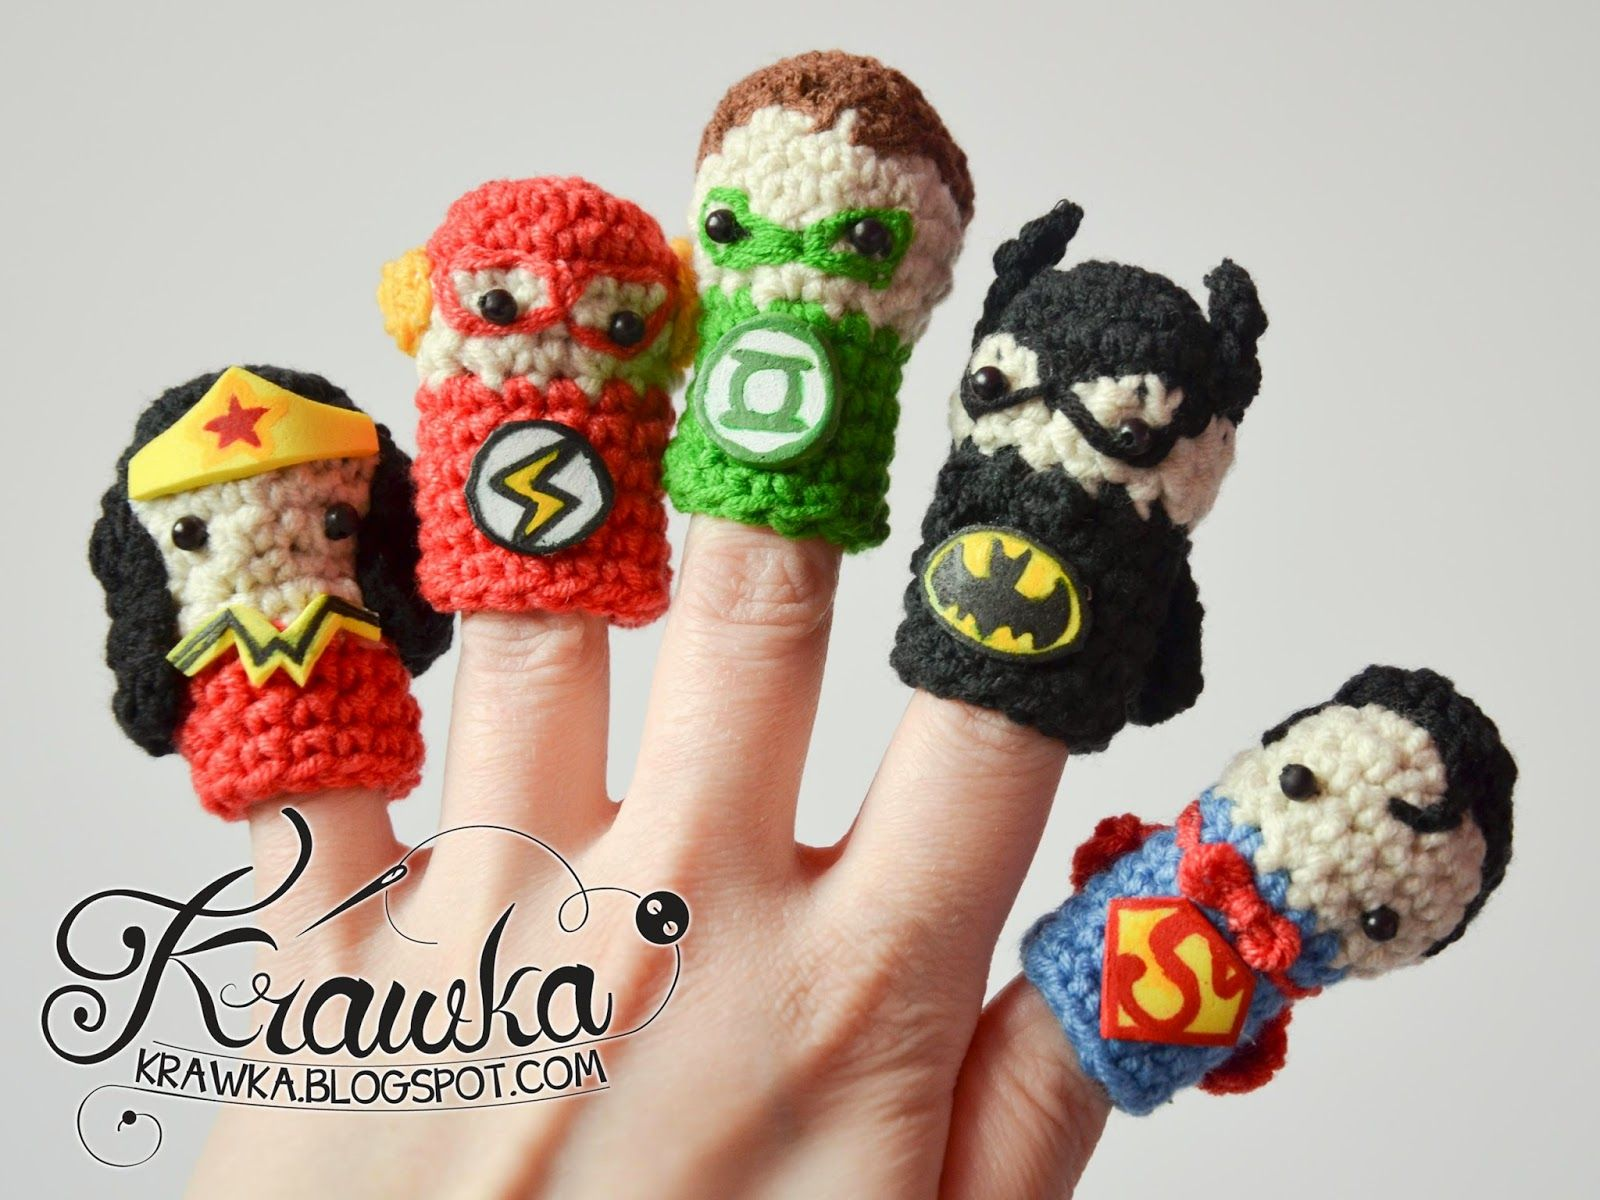 Krawka cute set of crochet finger puppets with free patterns krawka cute set of crochet finger puppets with free patterns justice league superman bankloansurffo Images